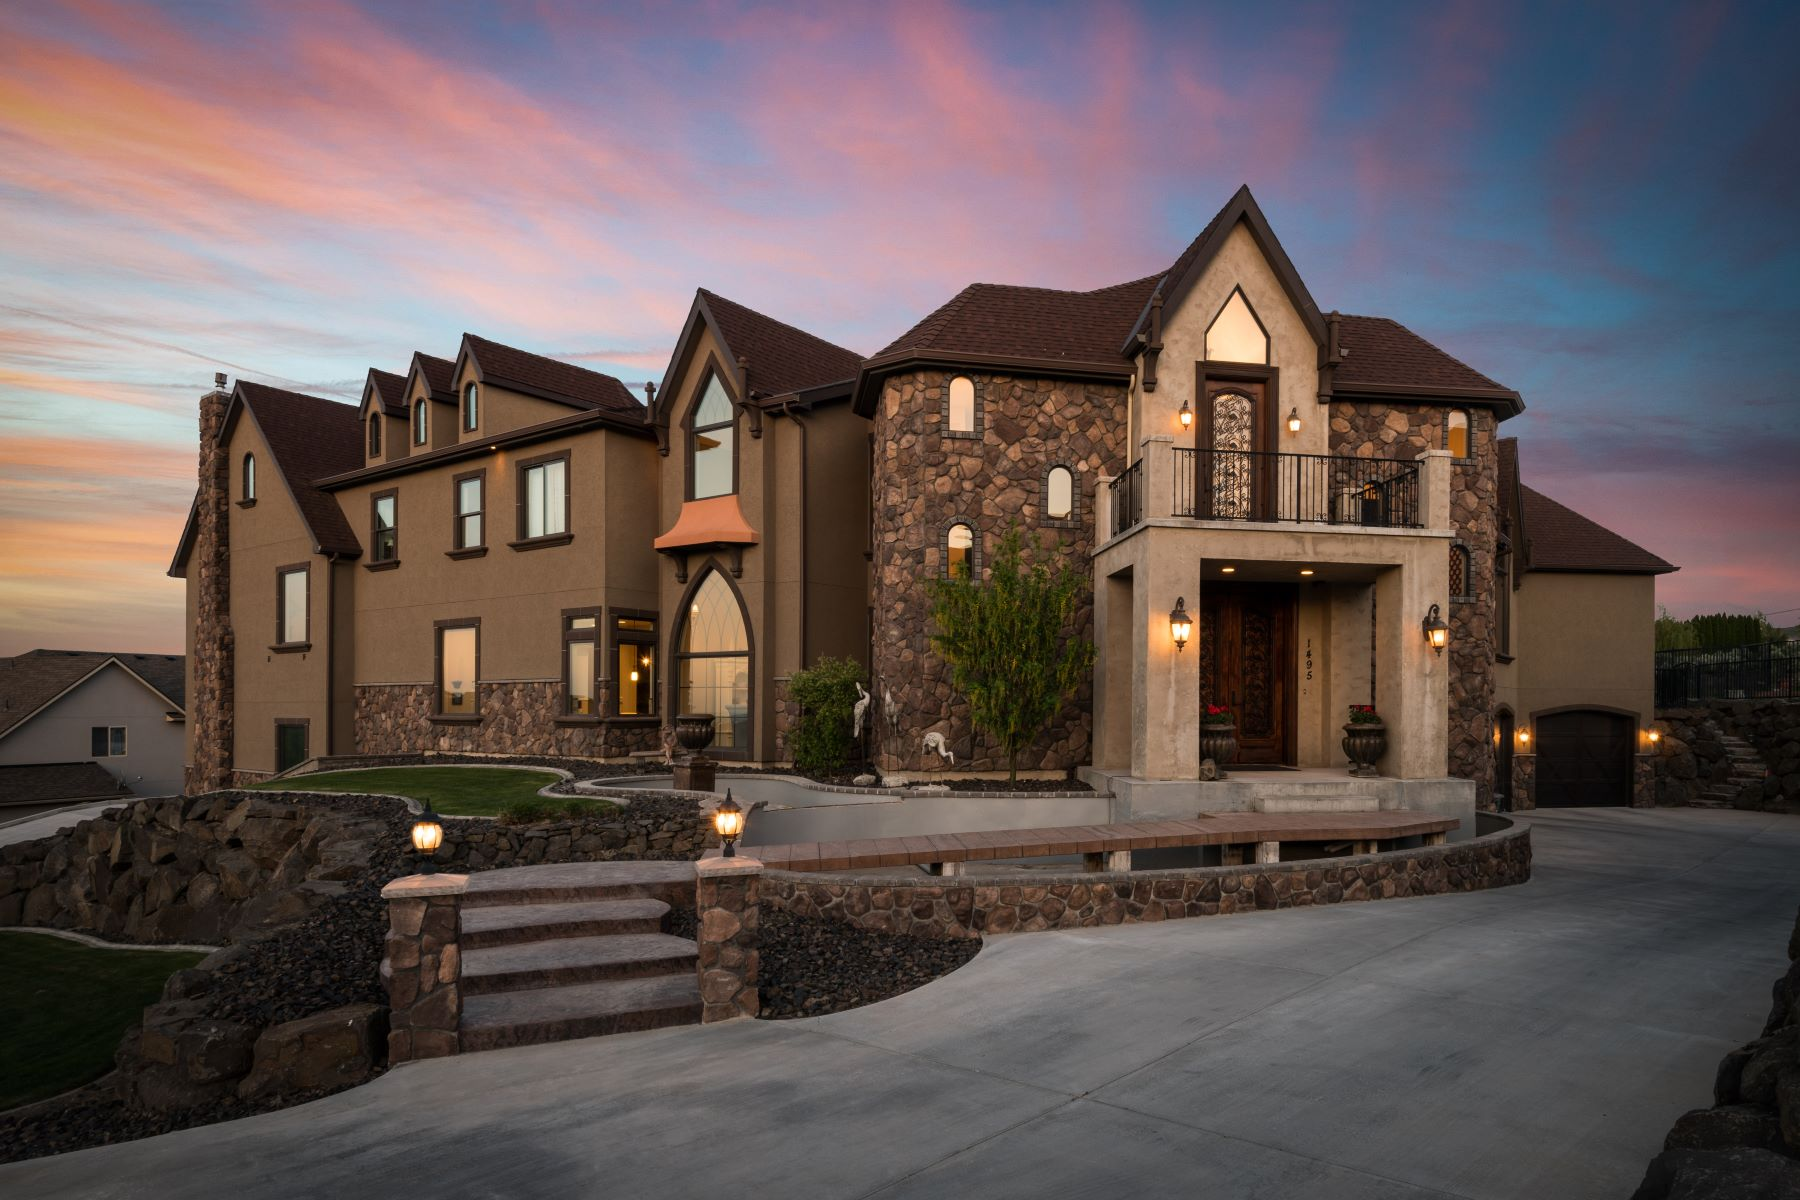 Single Family Homes for Sale at Majestic 2 Story with View 1495 Badger Mountain Loop Richland, Washington 99352 United States